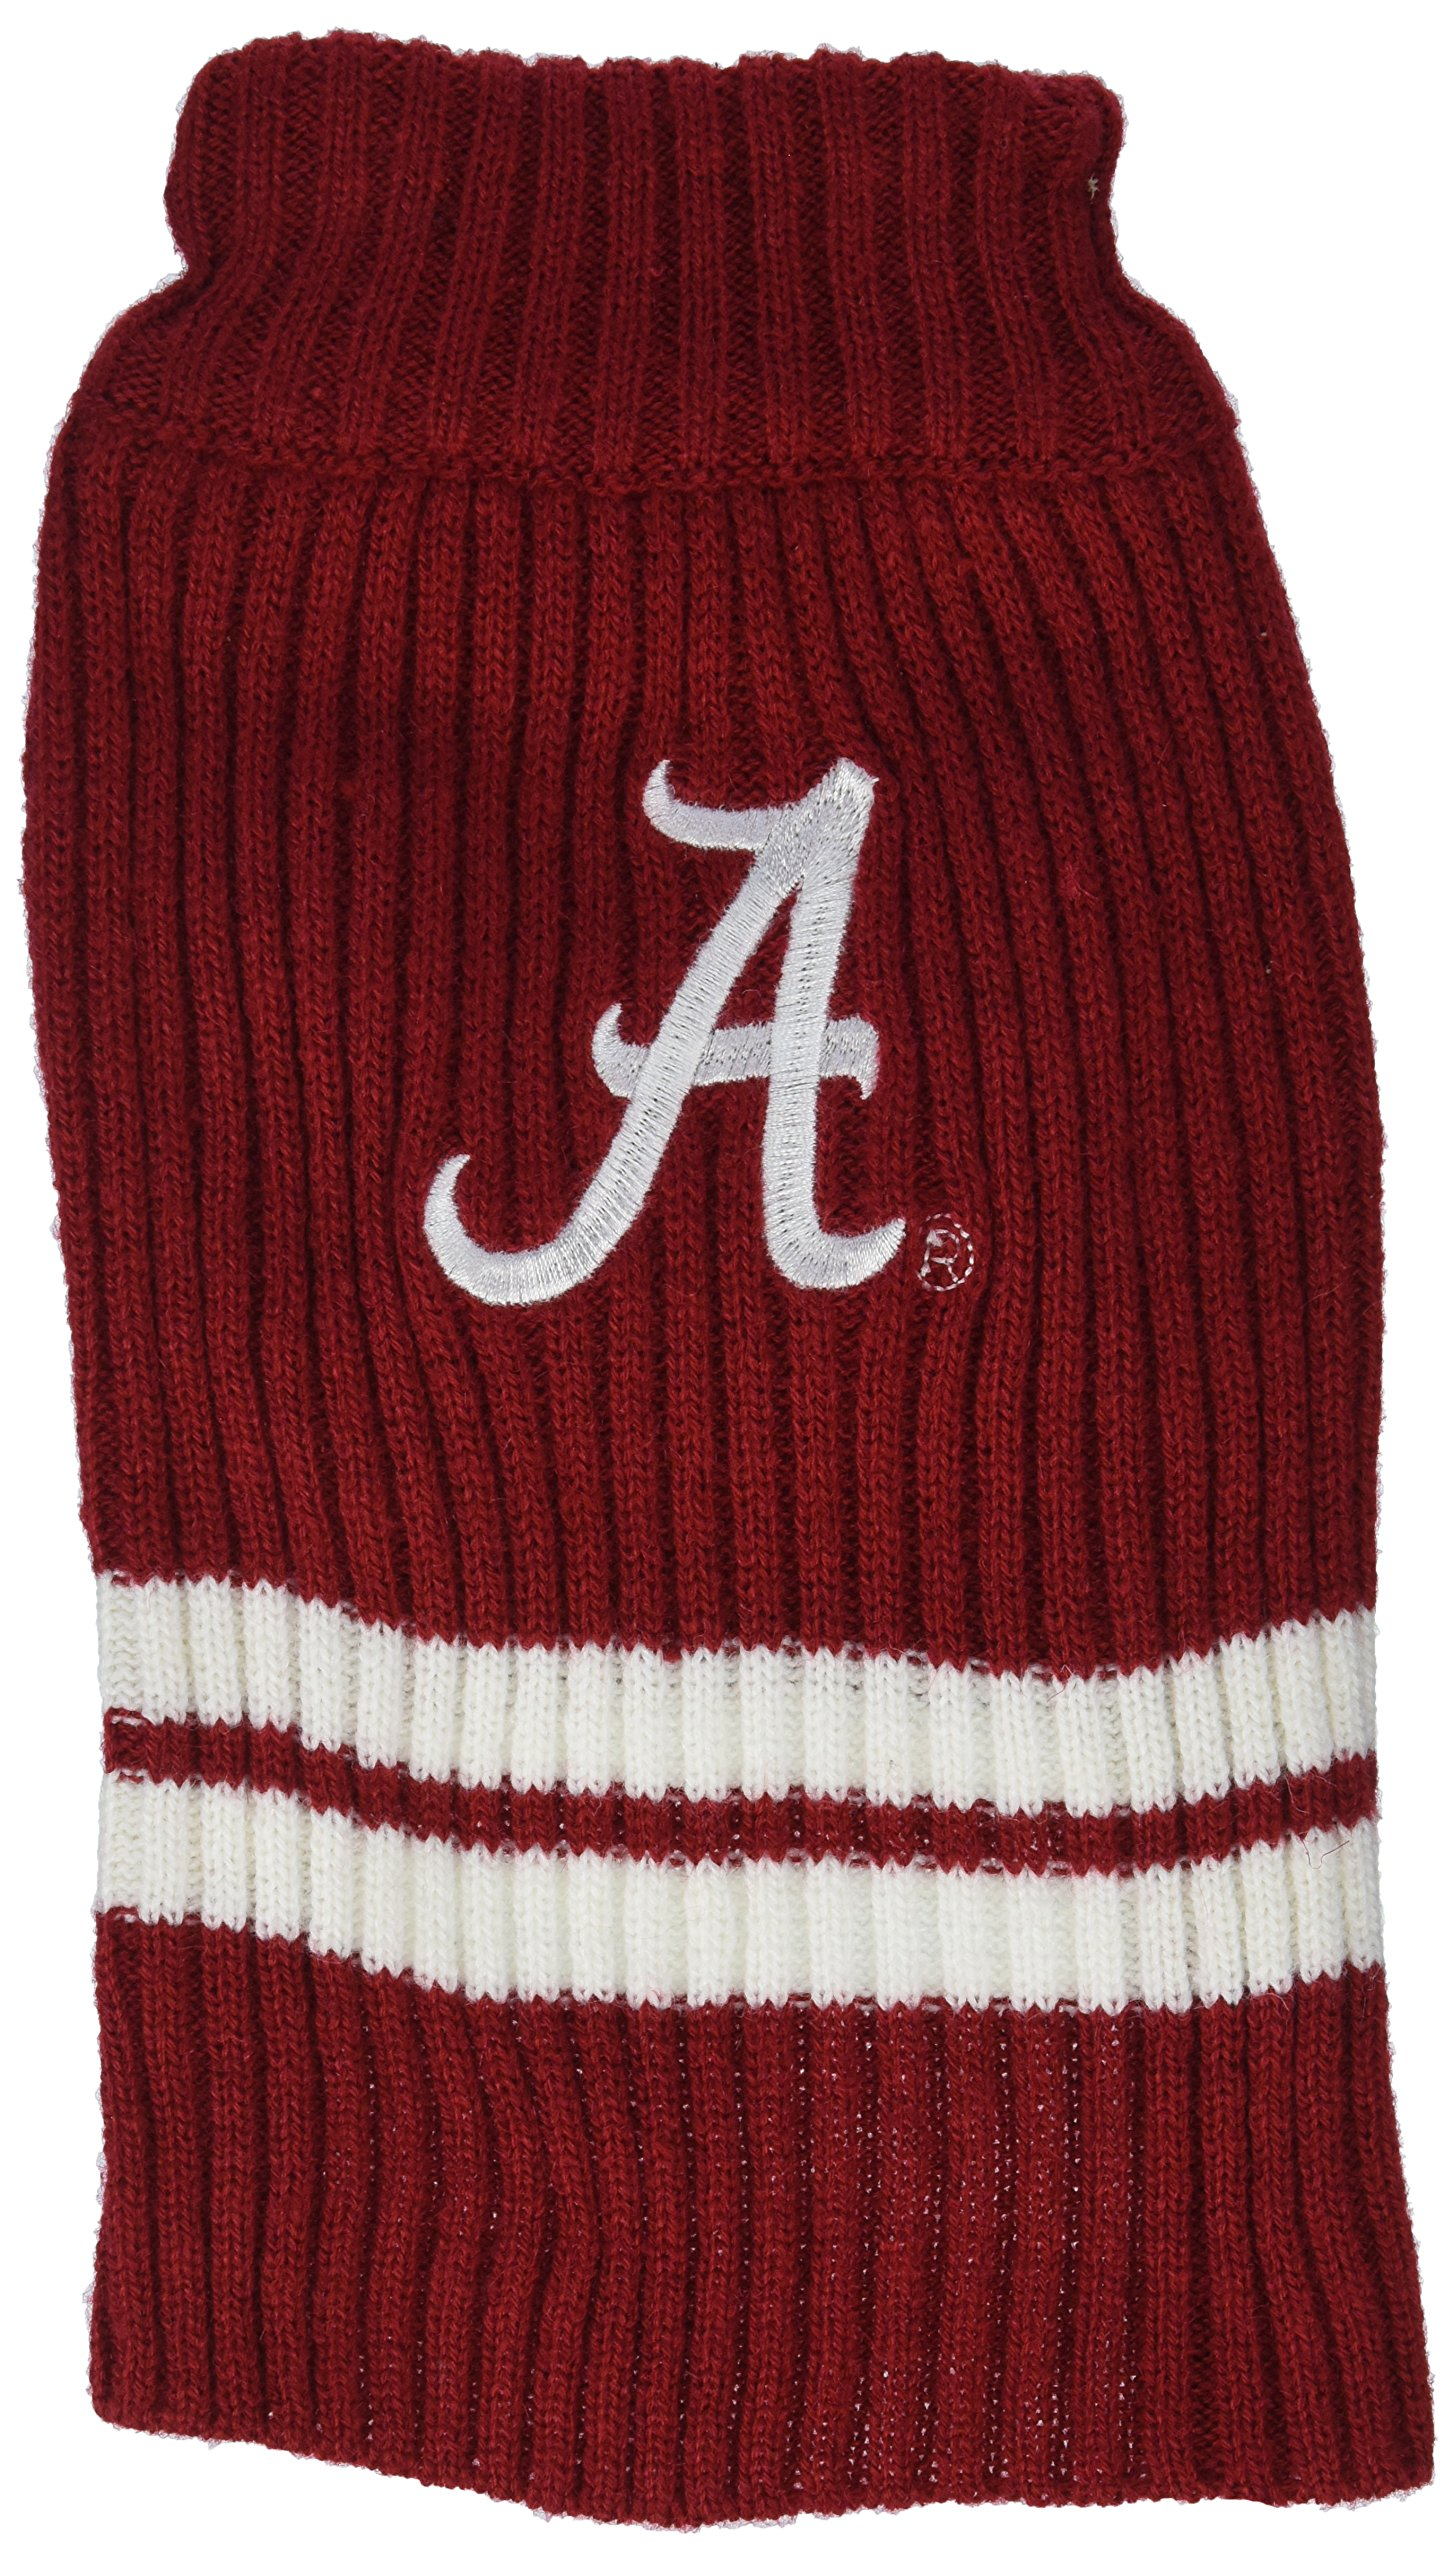 Pets First Collegiate Alabama Crimson Tide Dog Sweater, X-Small by Pets First